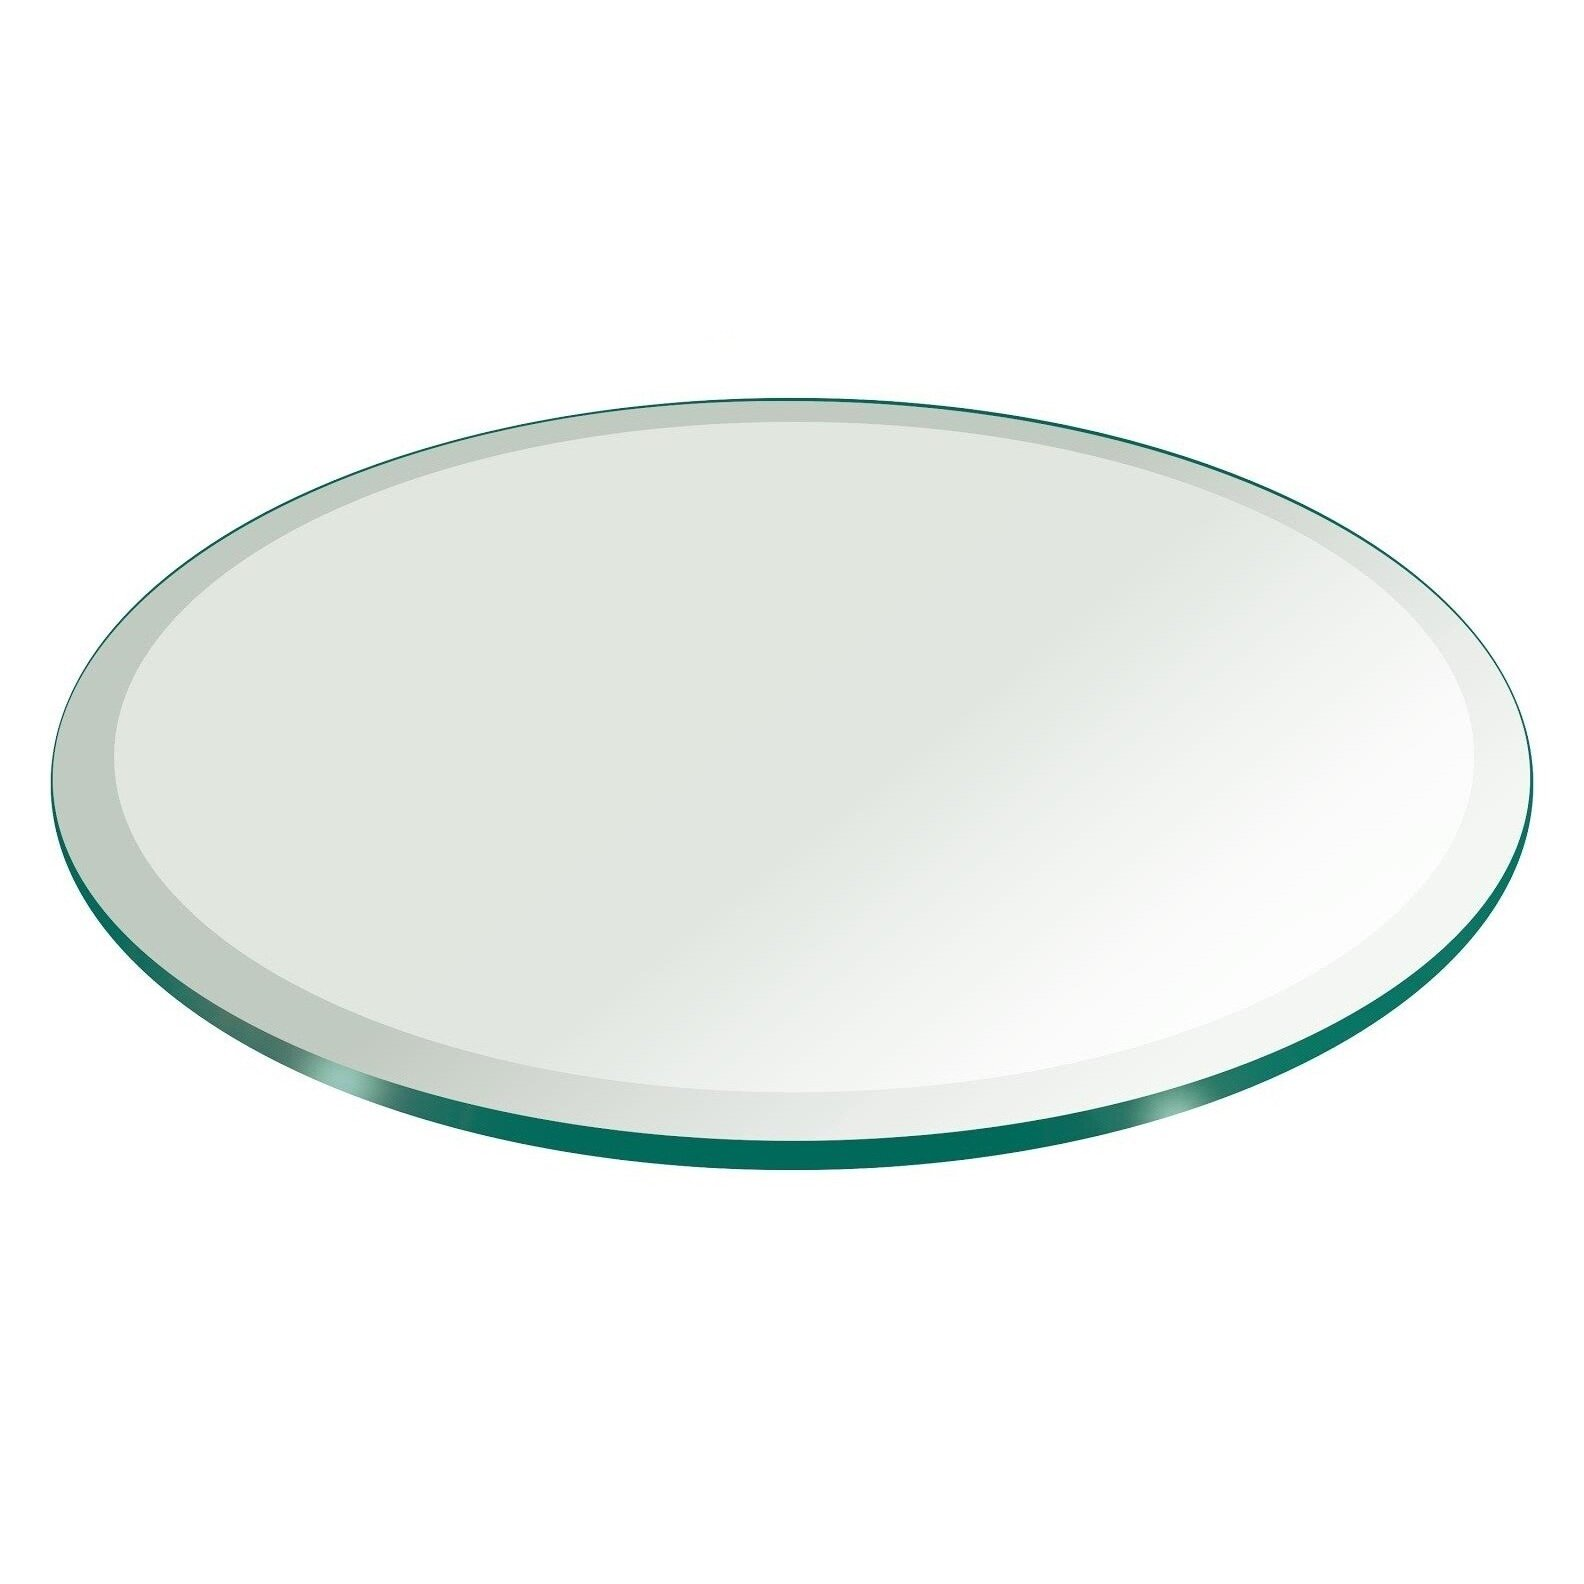 Fab glass and mirror round beveled tempered glass table for 12 inch round glass table top